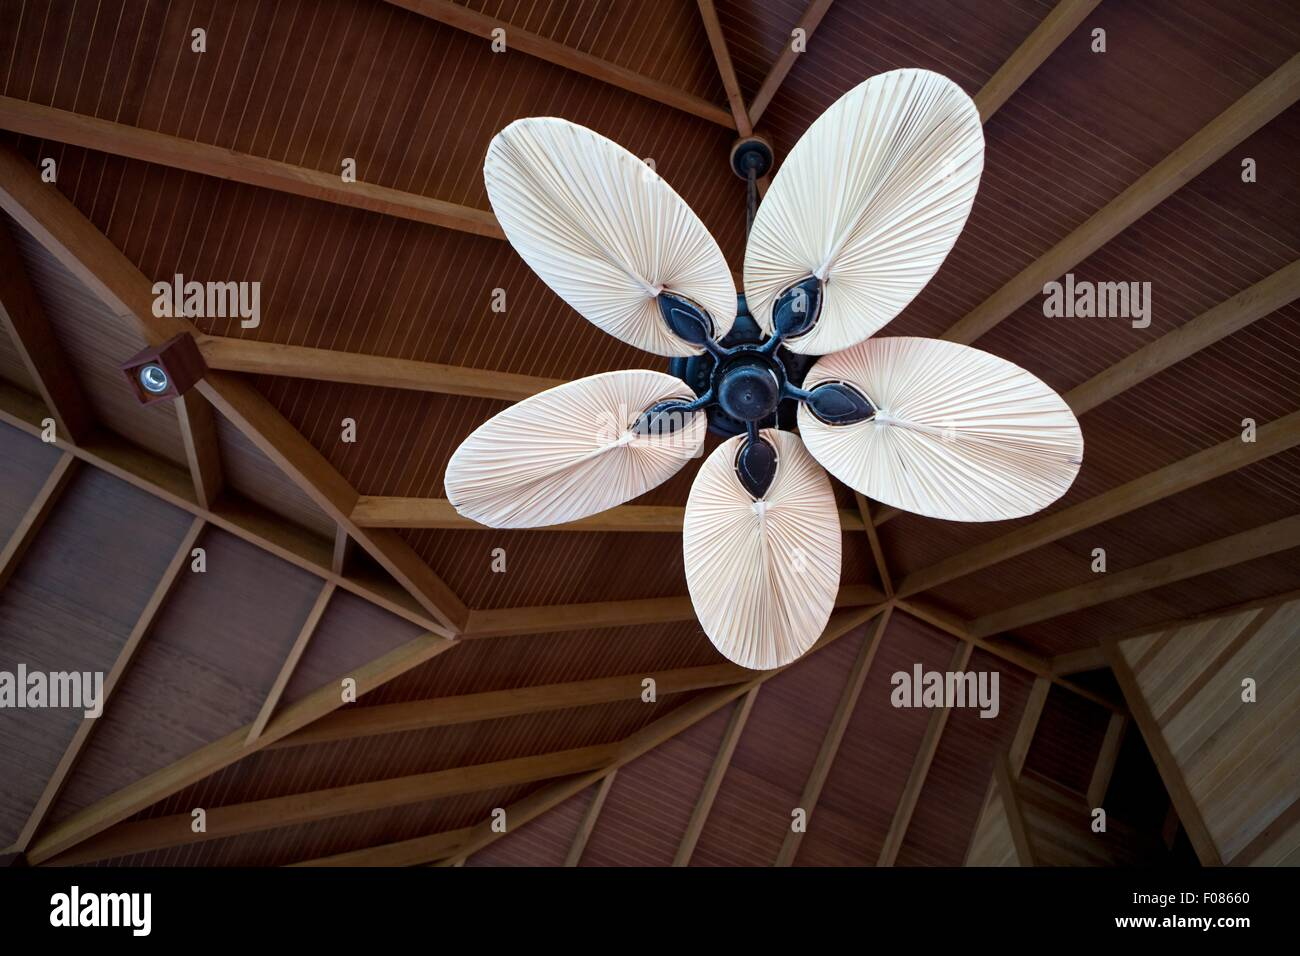 Ceiling fan in the dhigufinolhu island resort maldives low angle ceiling fan in the dhigufinolhu island resort maldives low angle view aloadofball Images